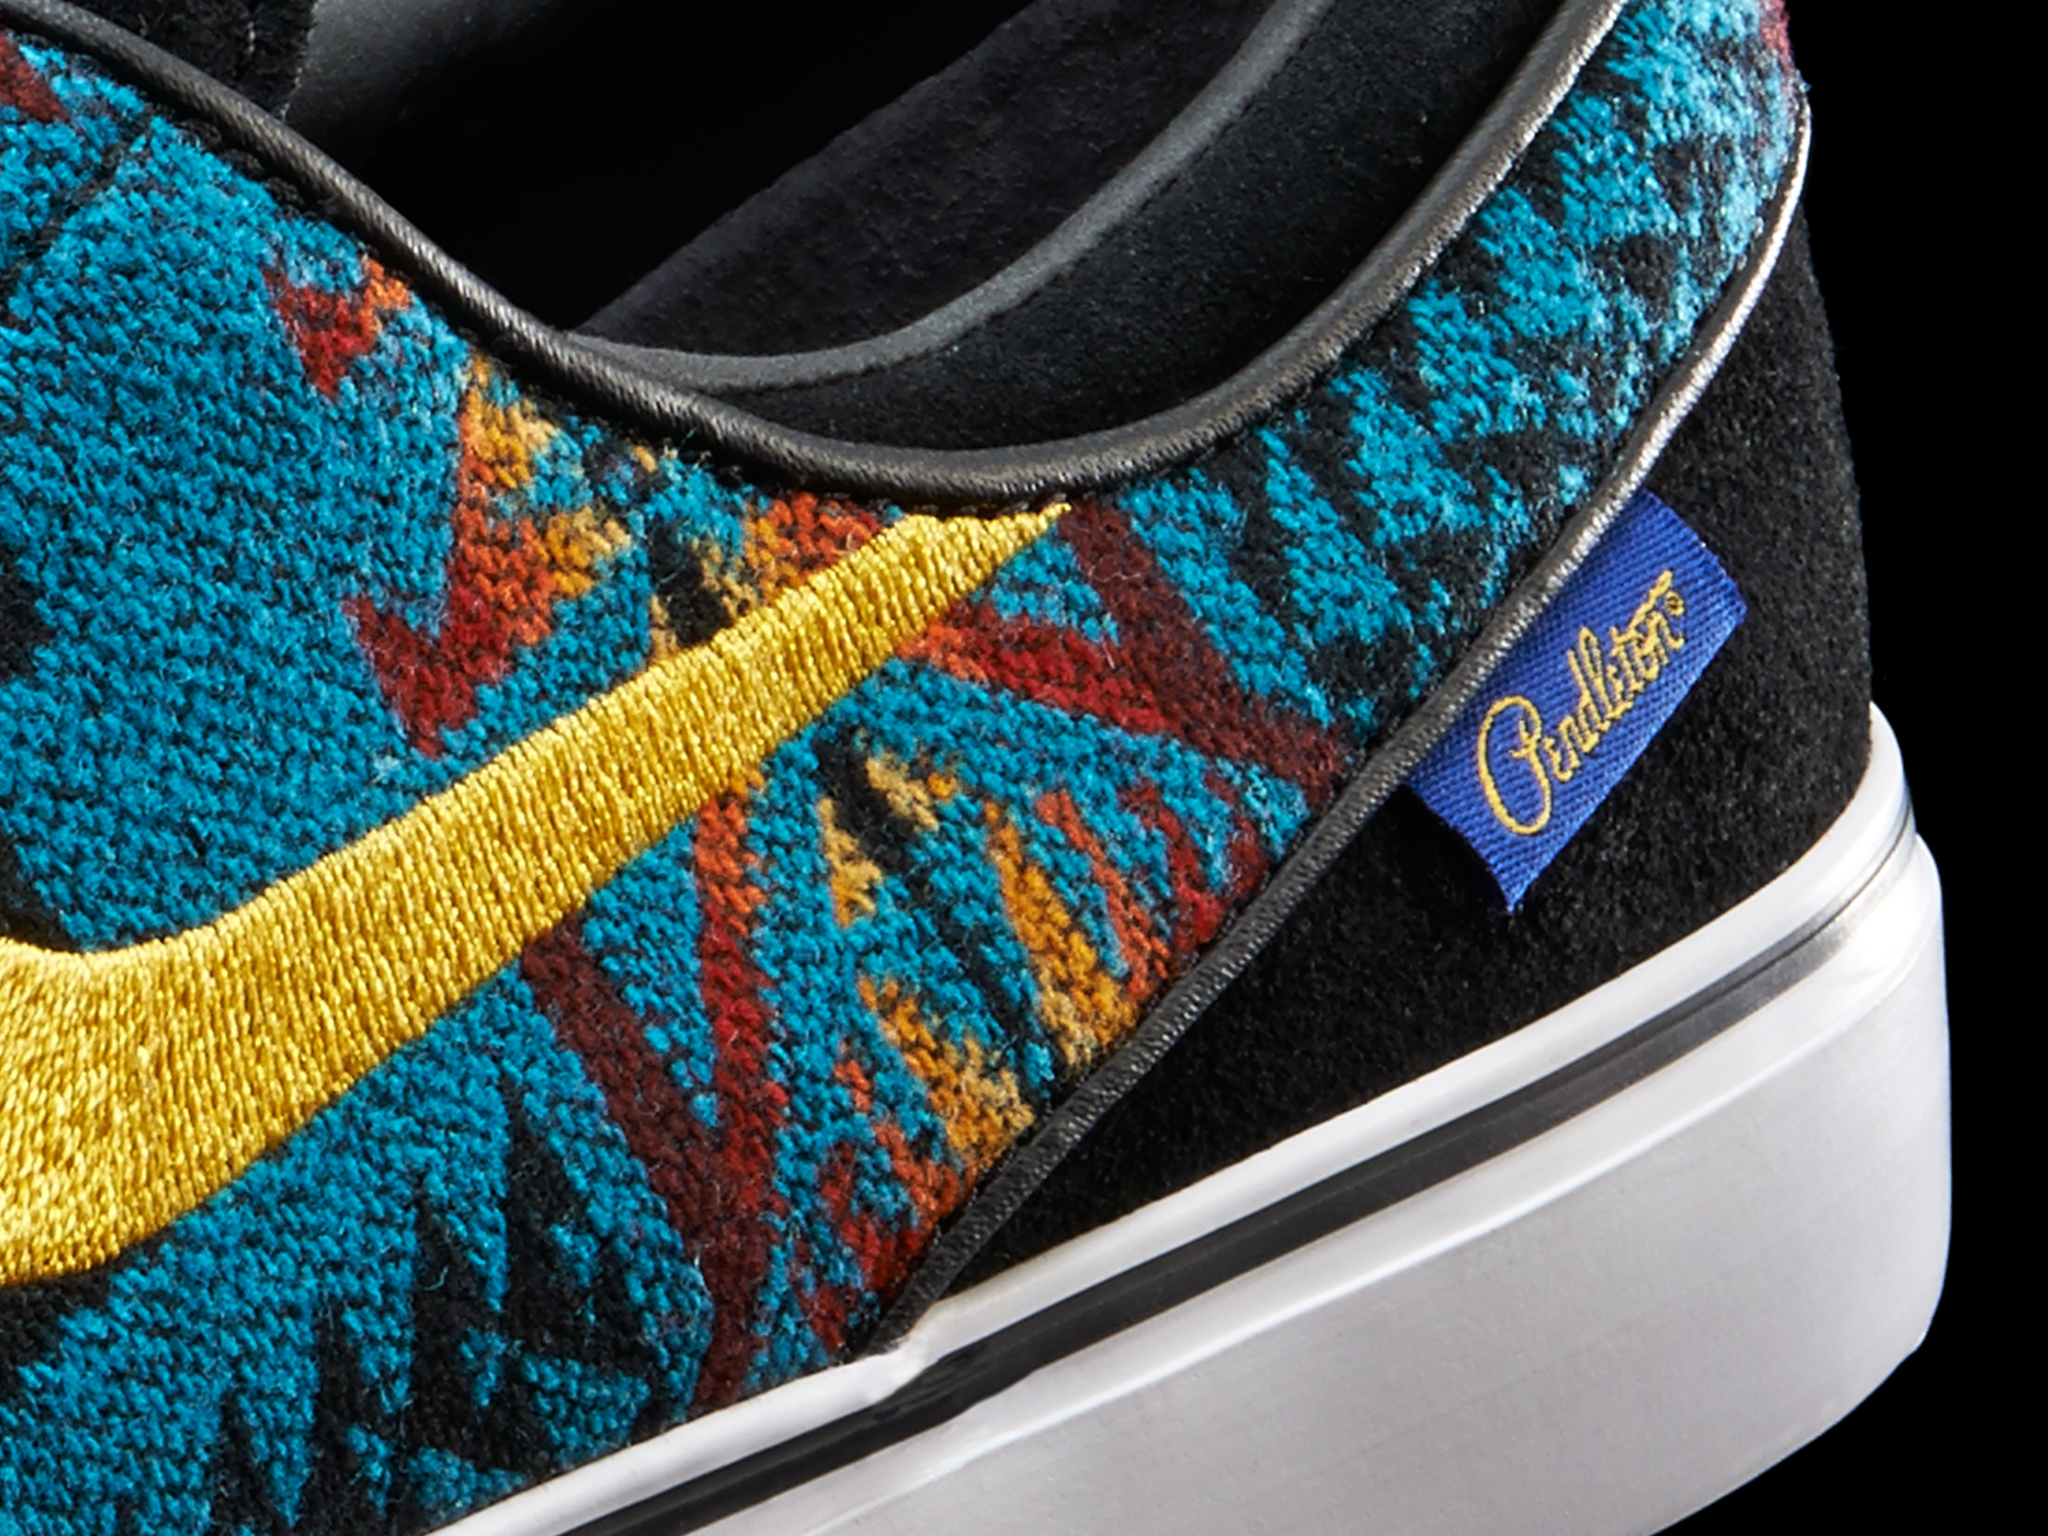 Pendleton Nike Shoes For Sale